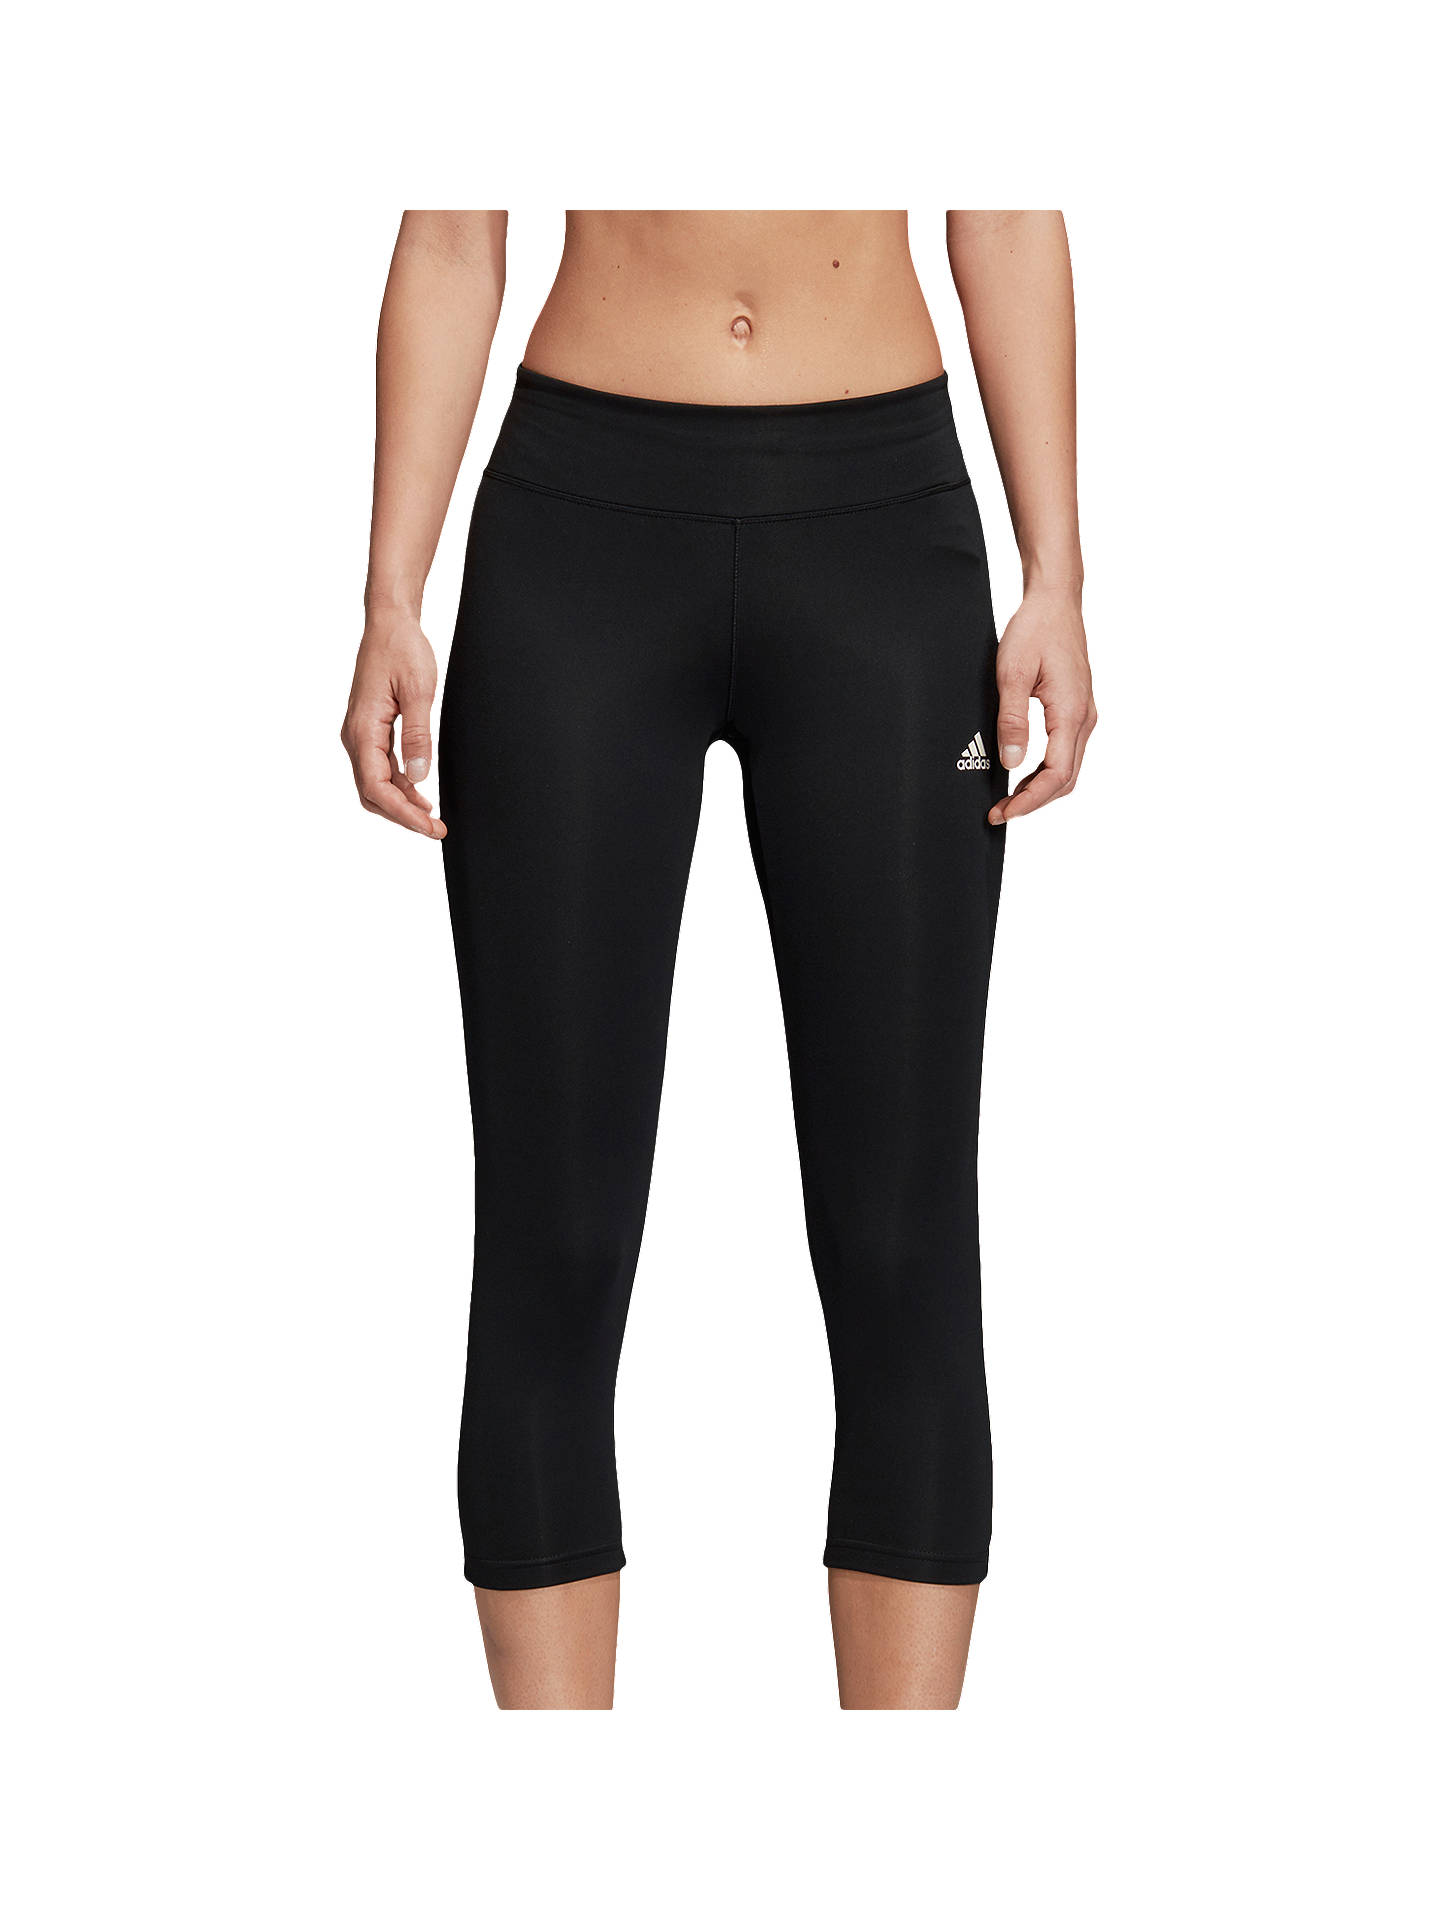 4e1abd33 Buy adidas D2M 3/4 Capri Training Tights, Black, Black, XS Online ...